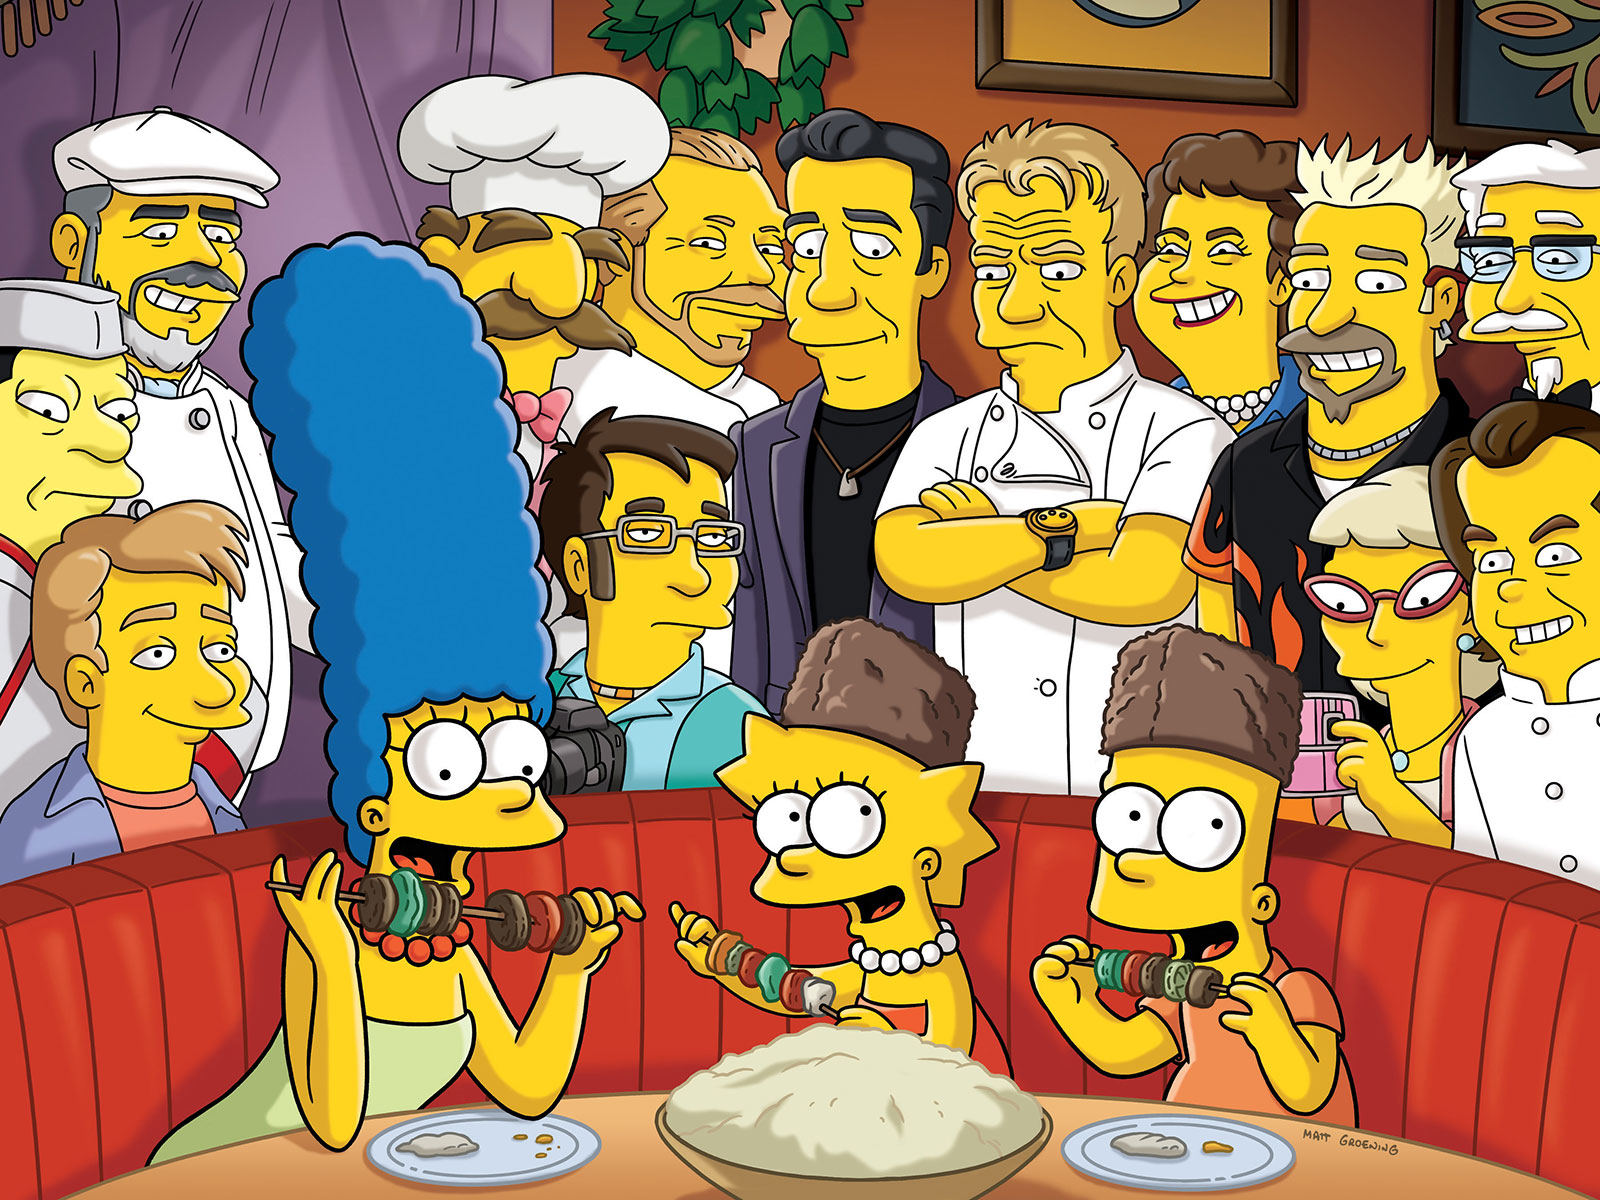 Every Celebrity Chef and Cooking Personality That's Been On The Simpsons